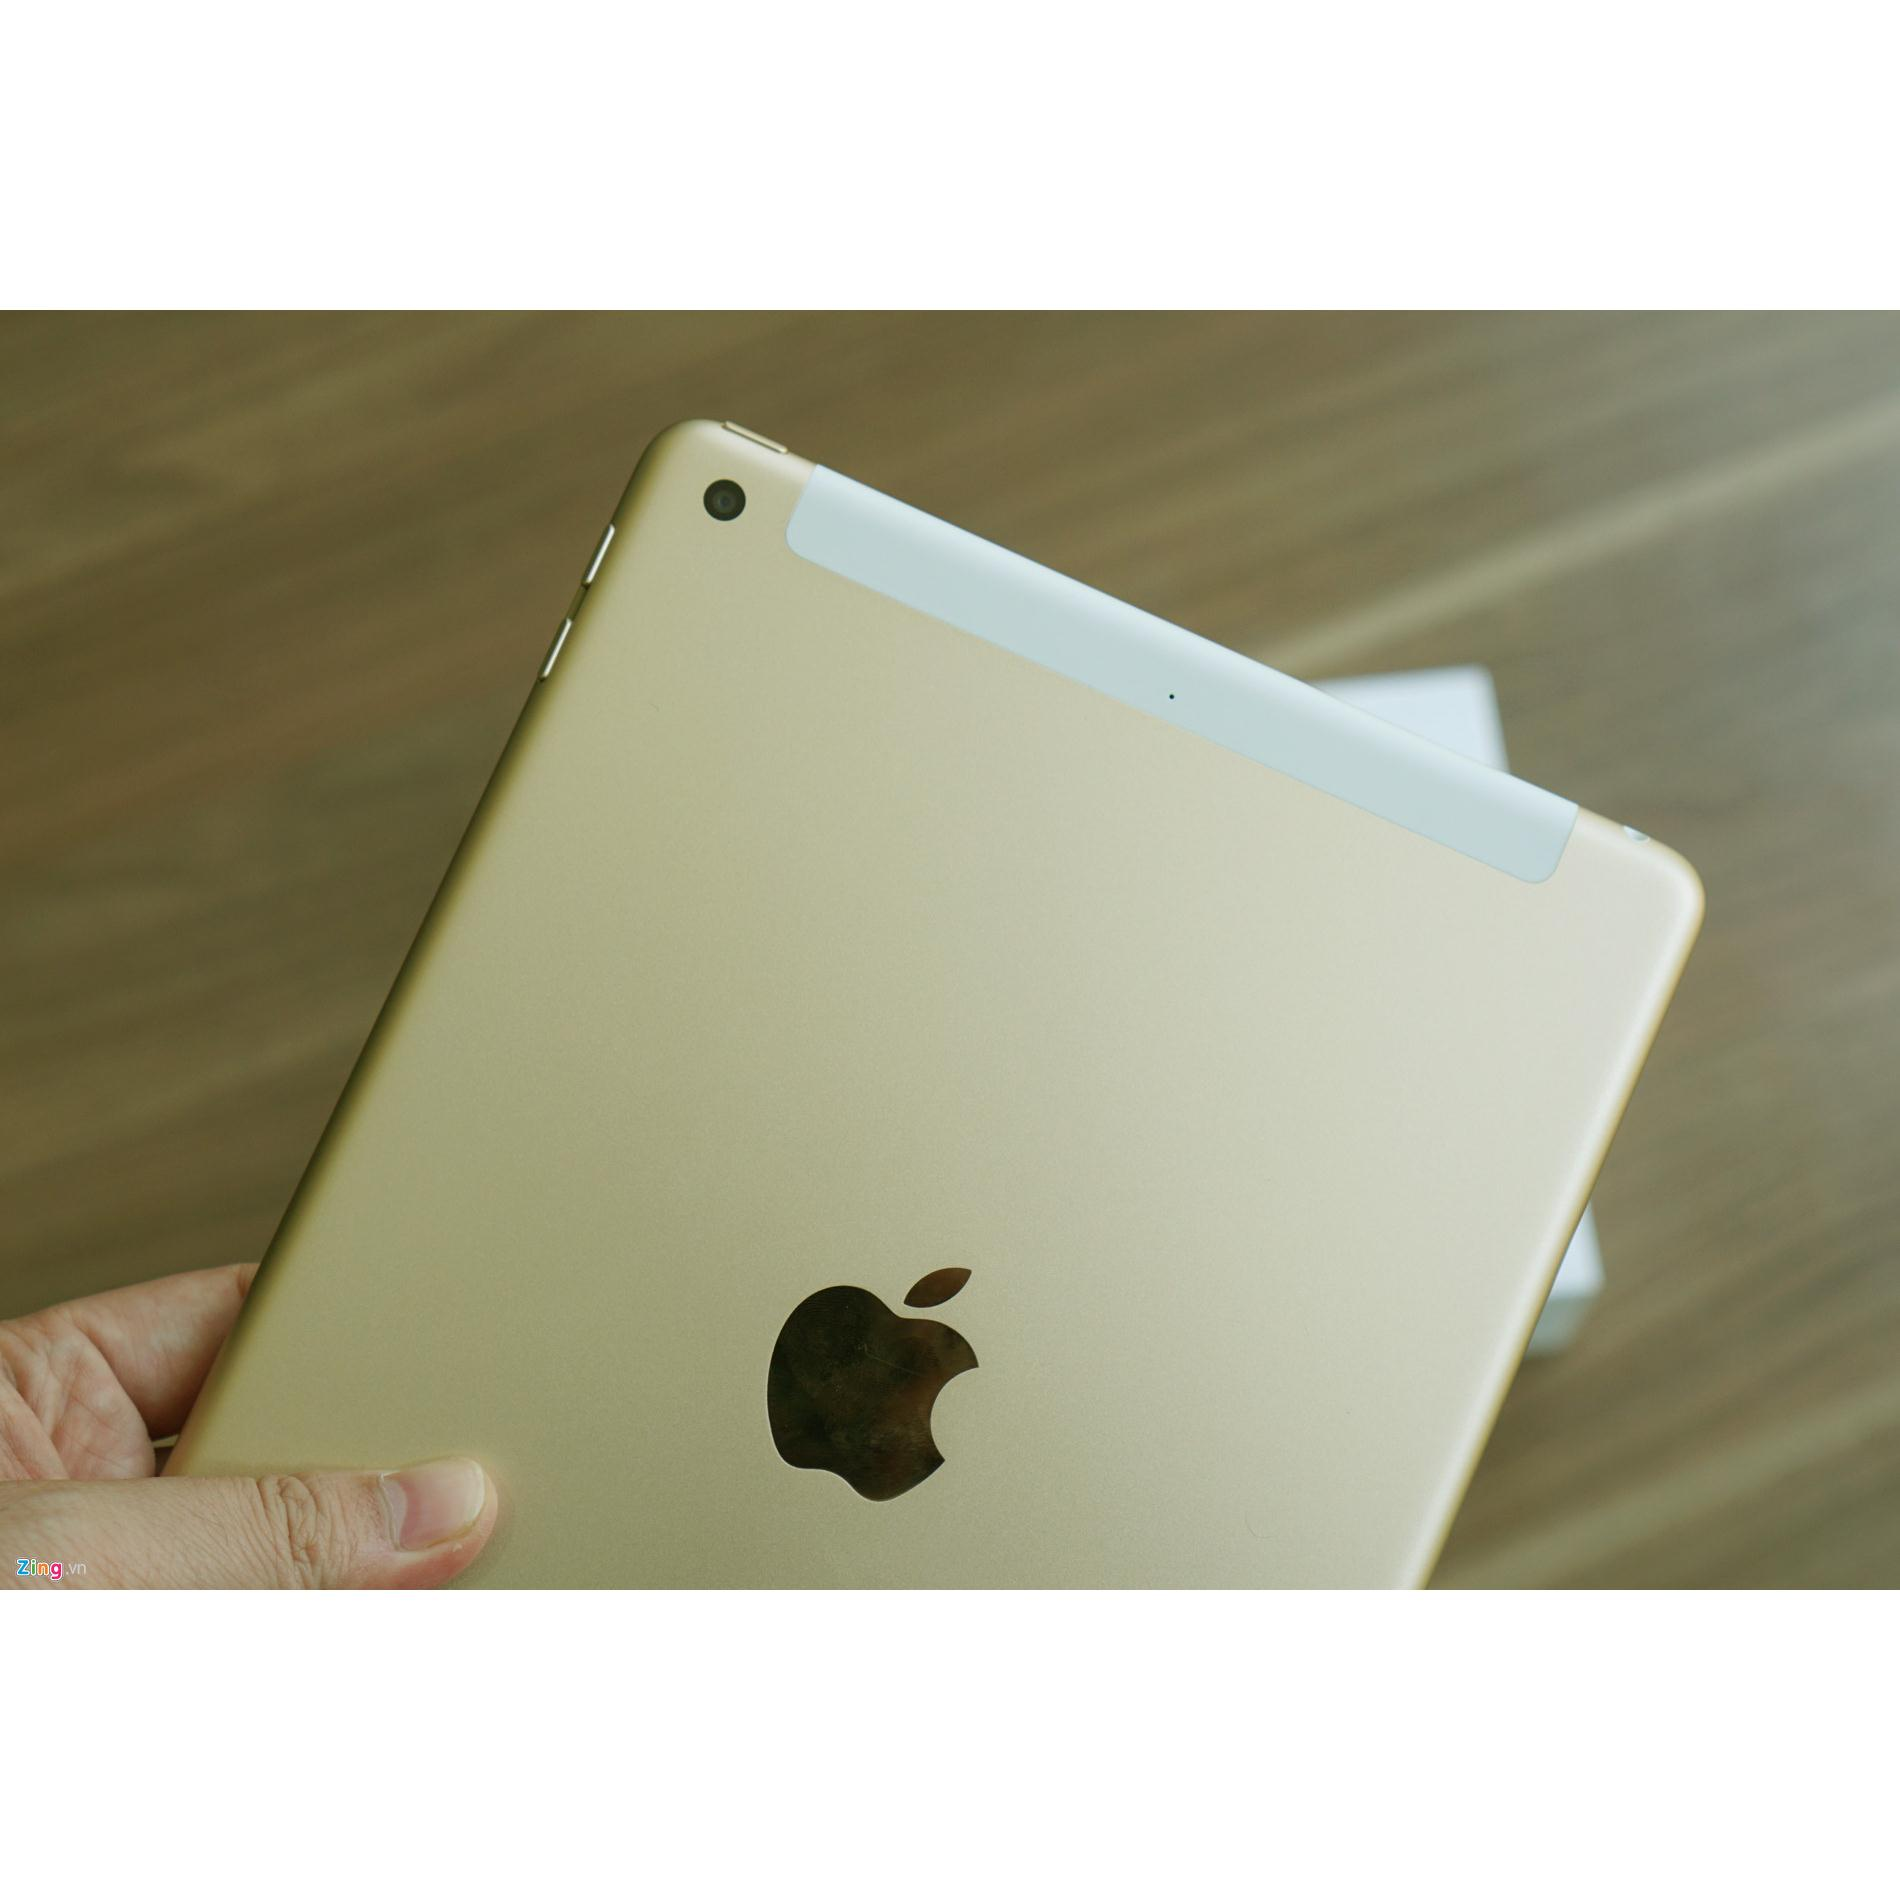 ipad-2017-128g-4g-wifi-gray-siver-gold-99-200